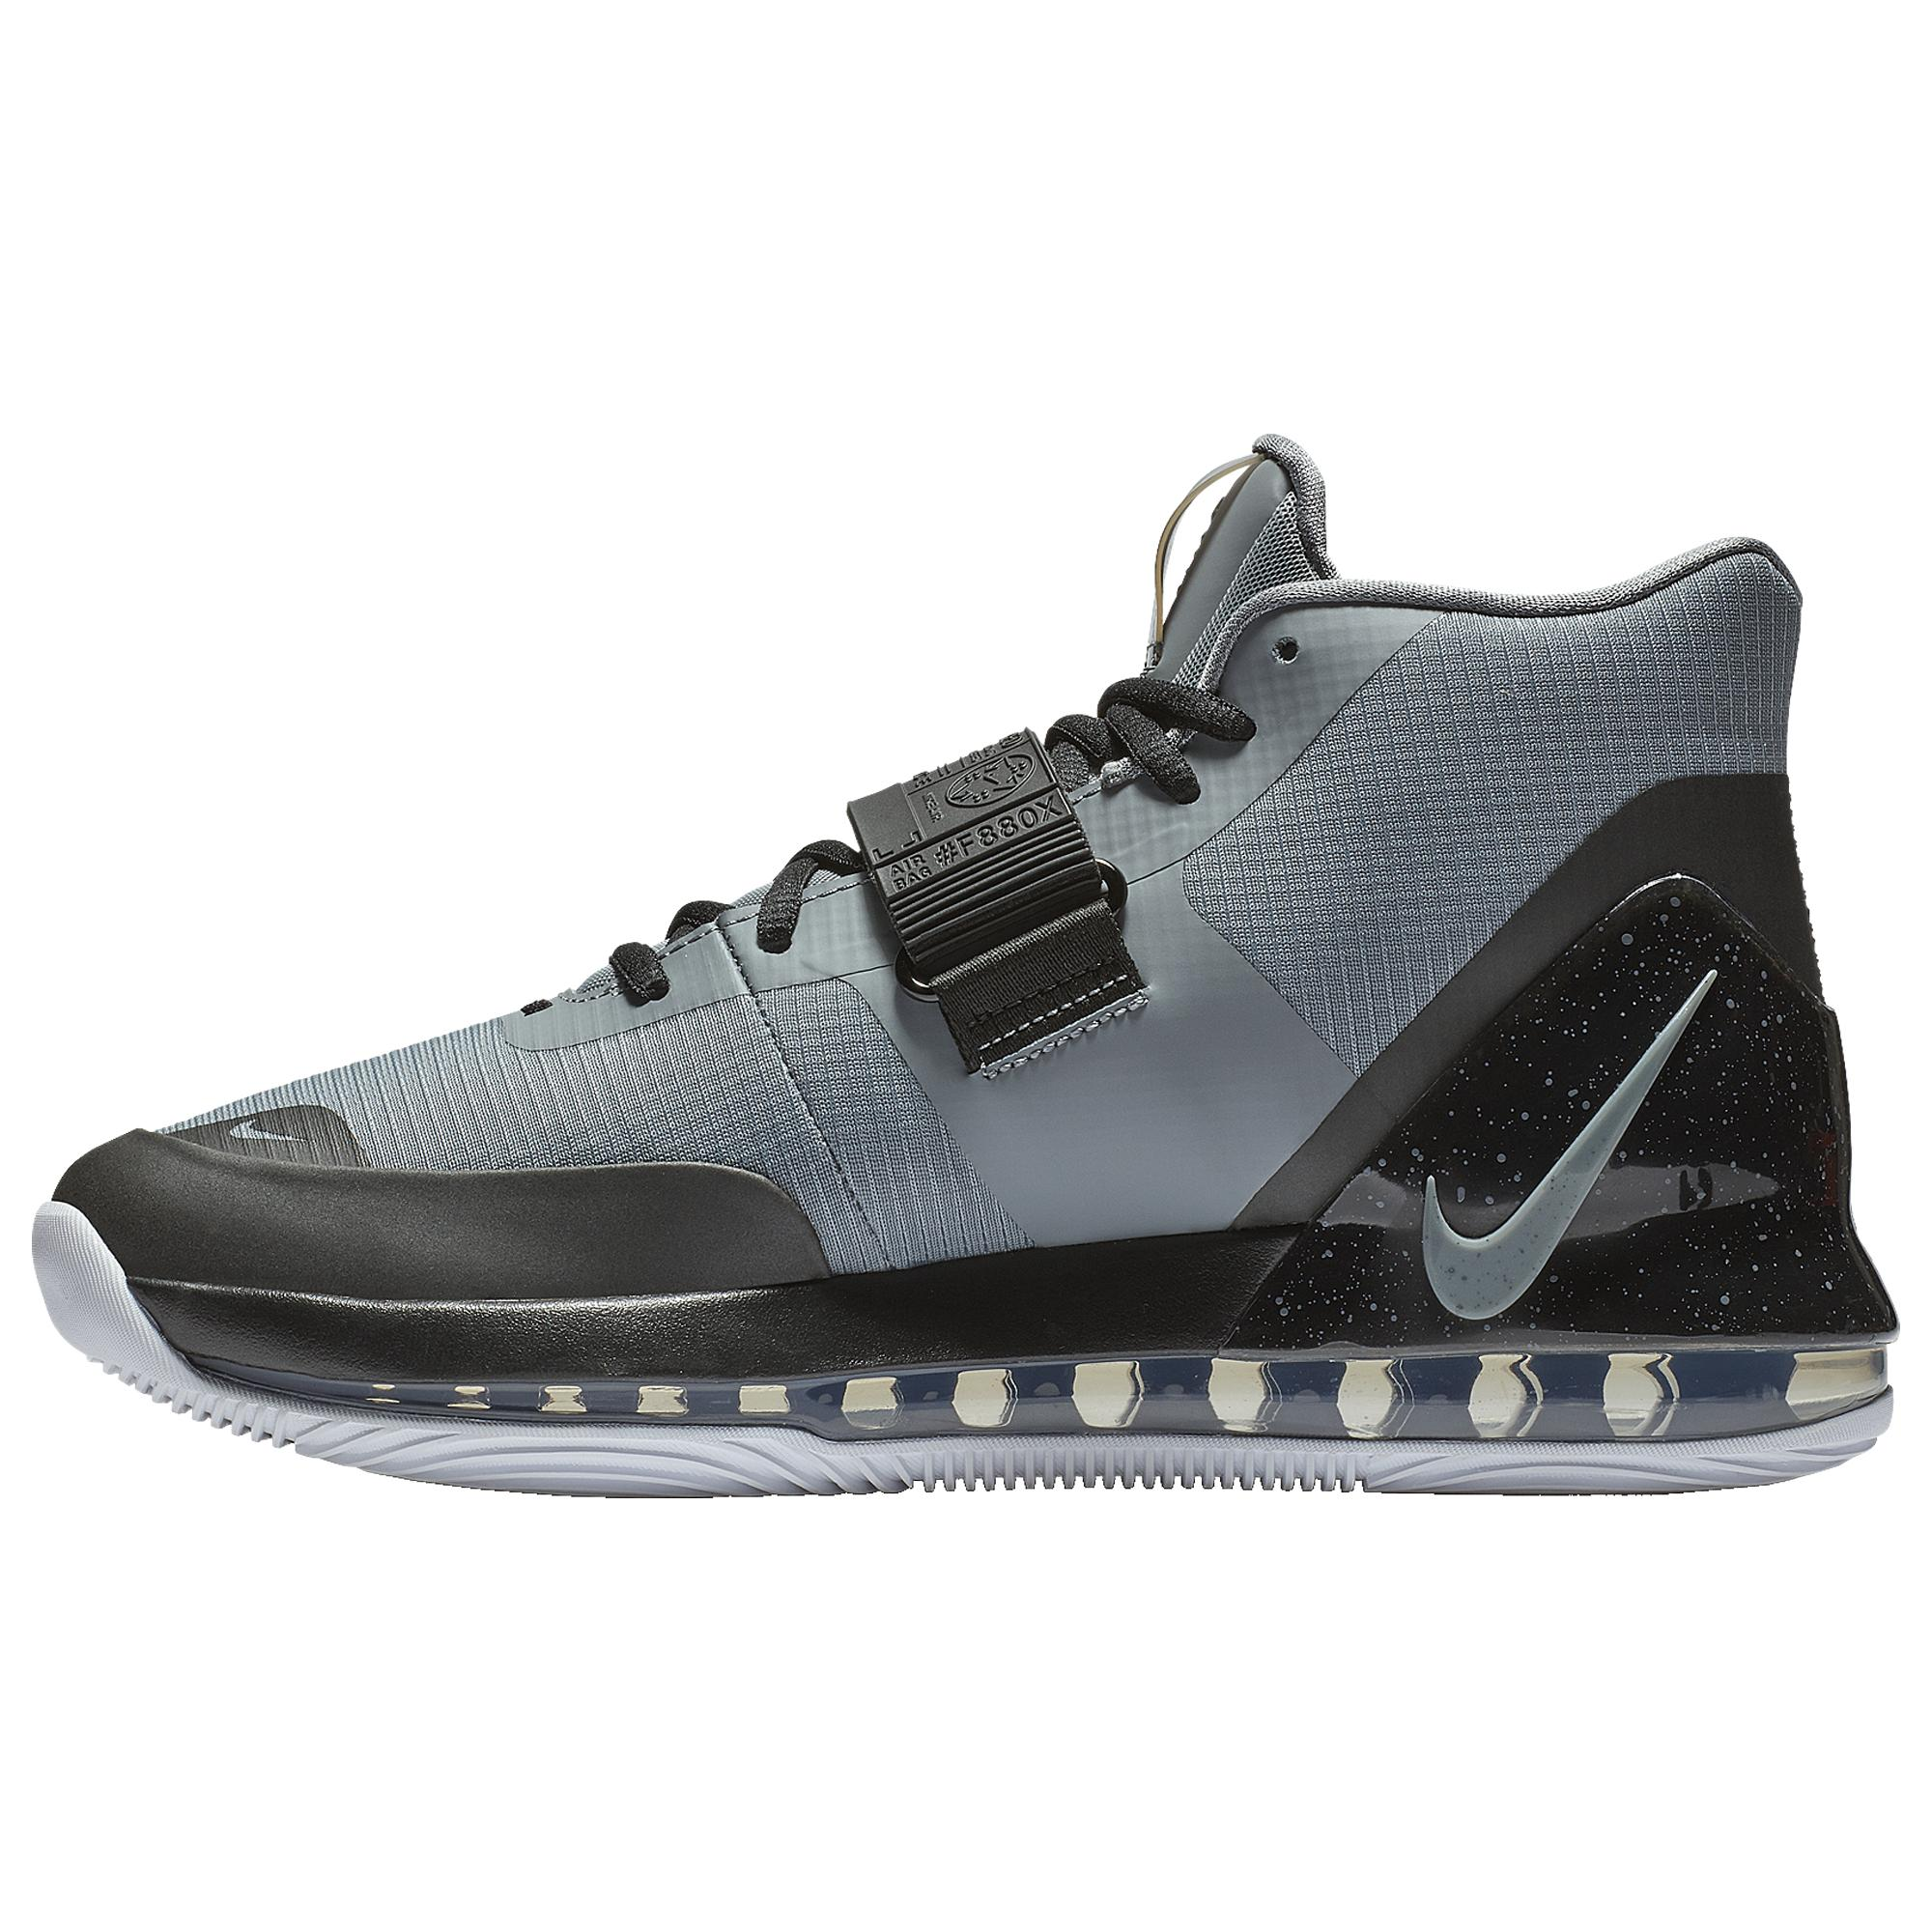 Nike Air Force Max Basketball Shoes in Cool Grey/Black/White ...